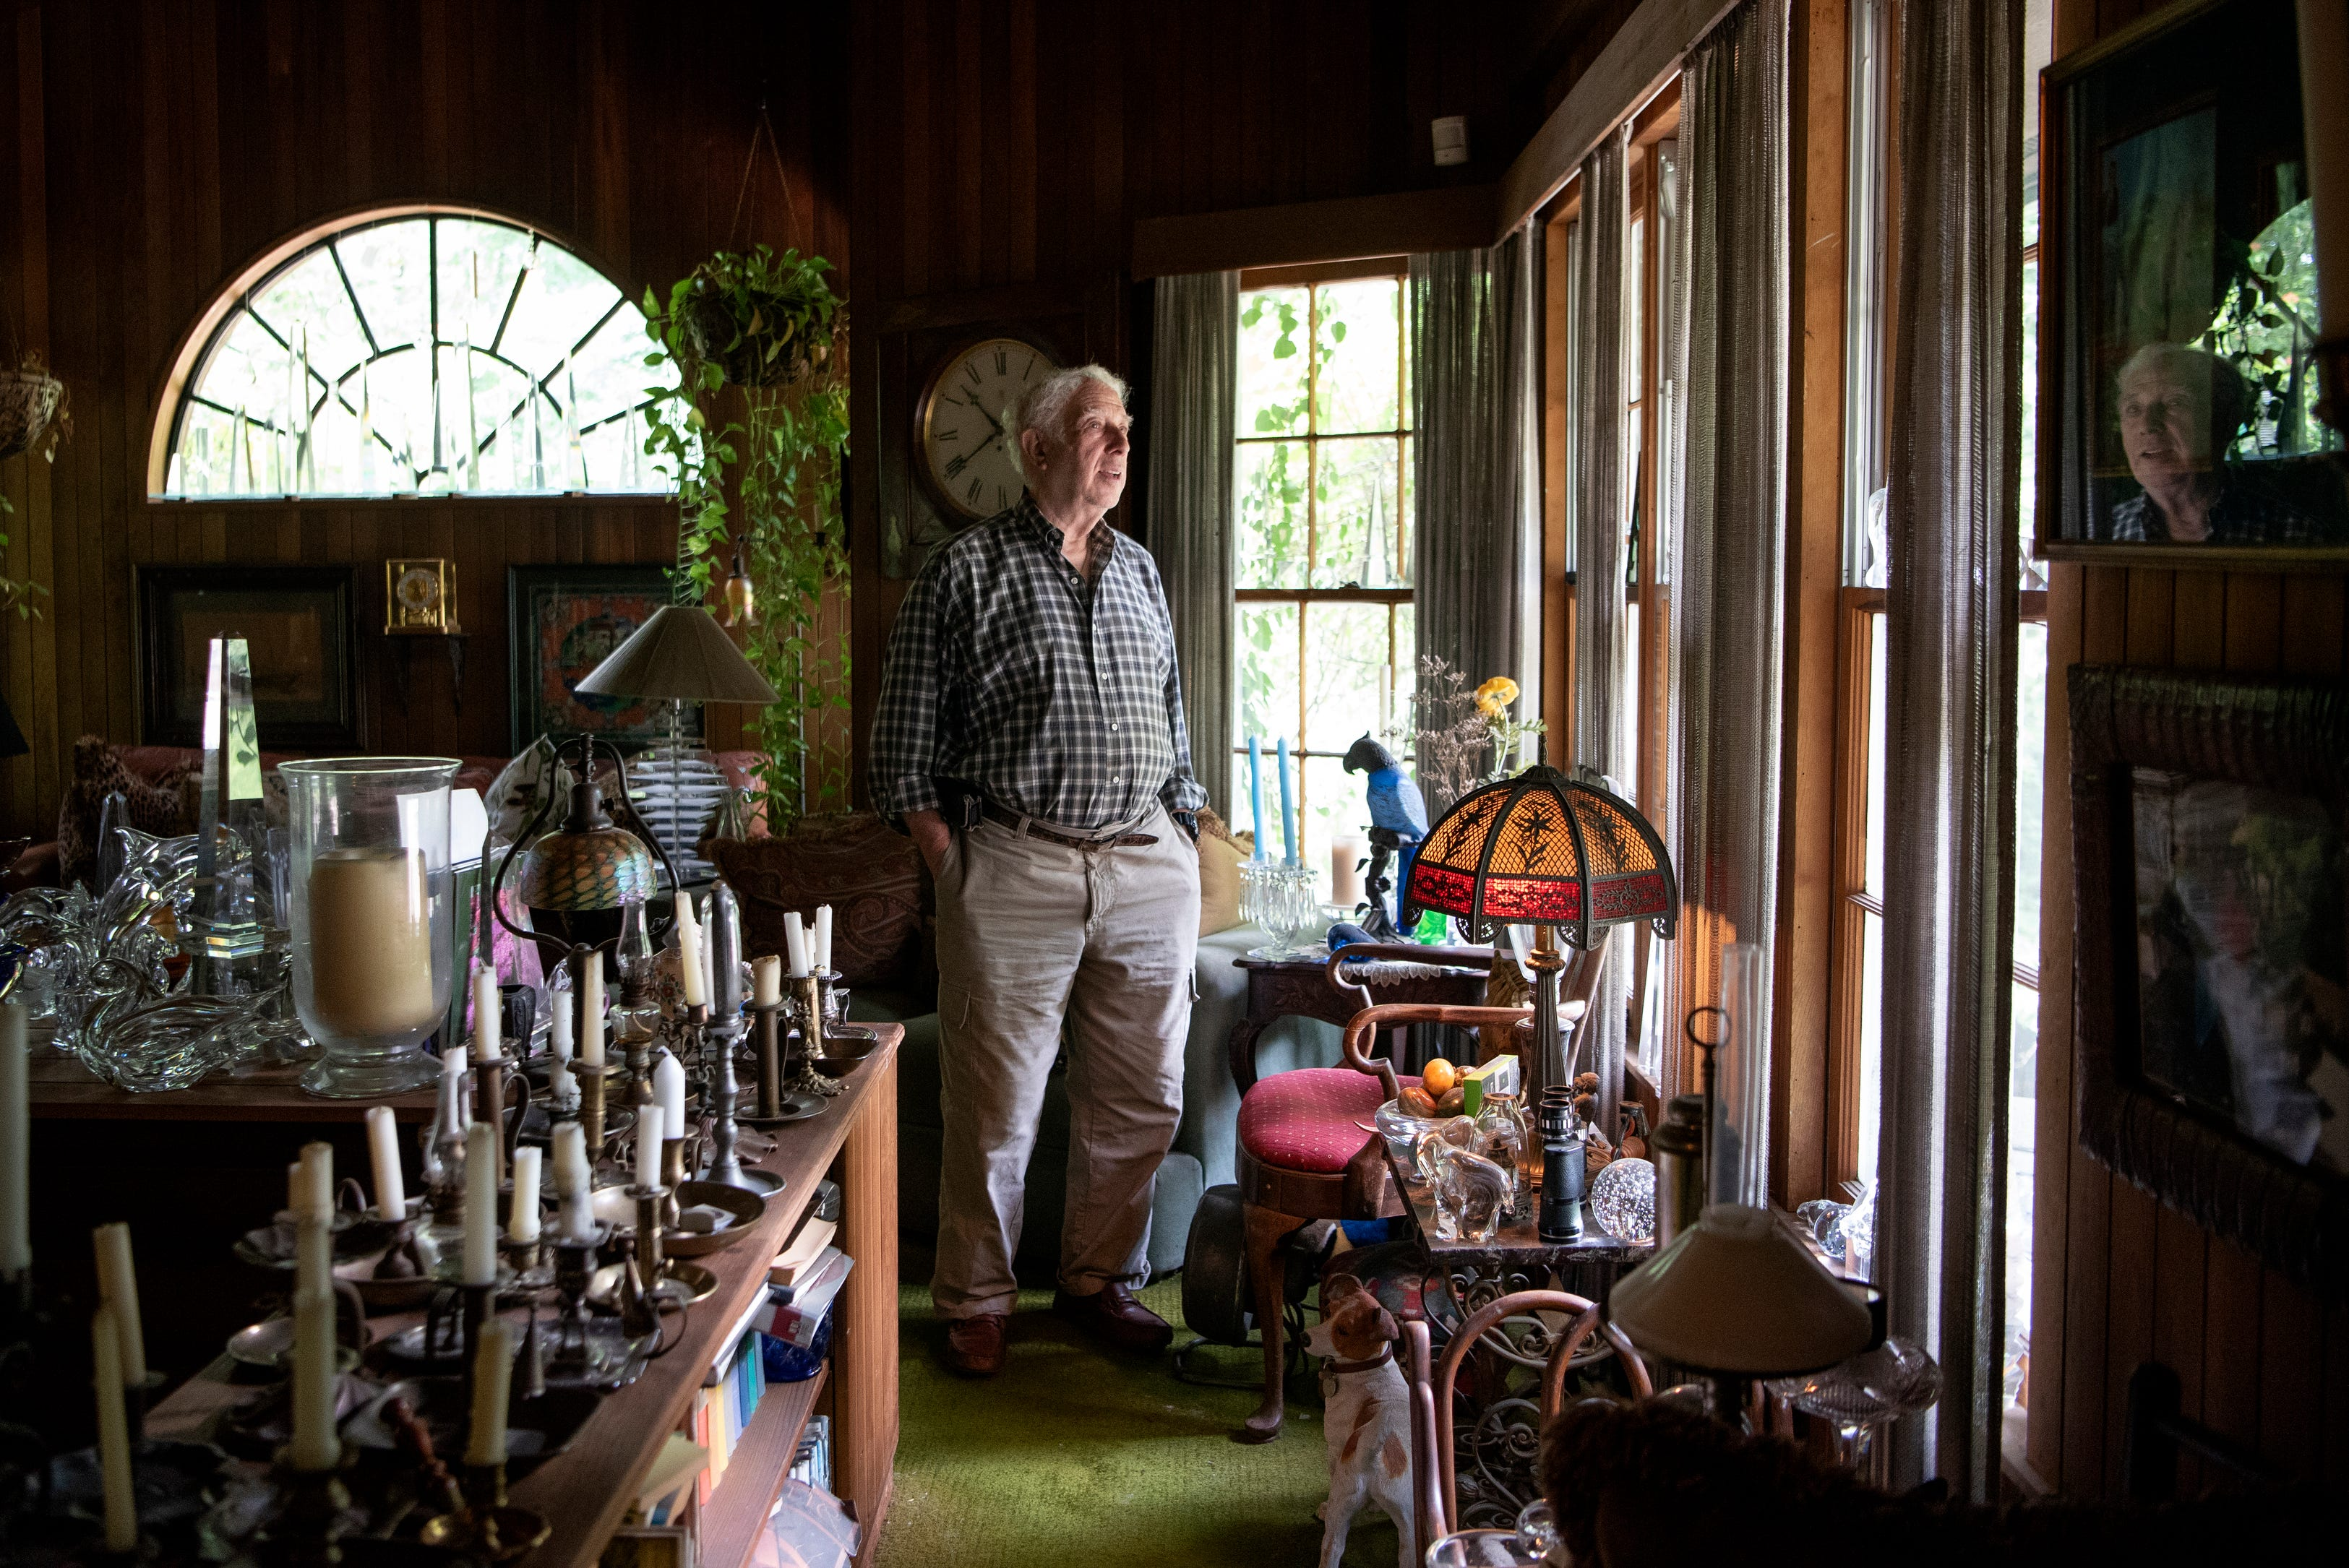 Nj Collector Looking For Someone To Save His Upper Saddle River Estate